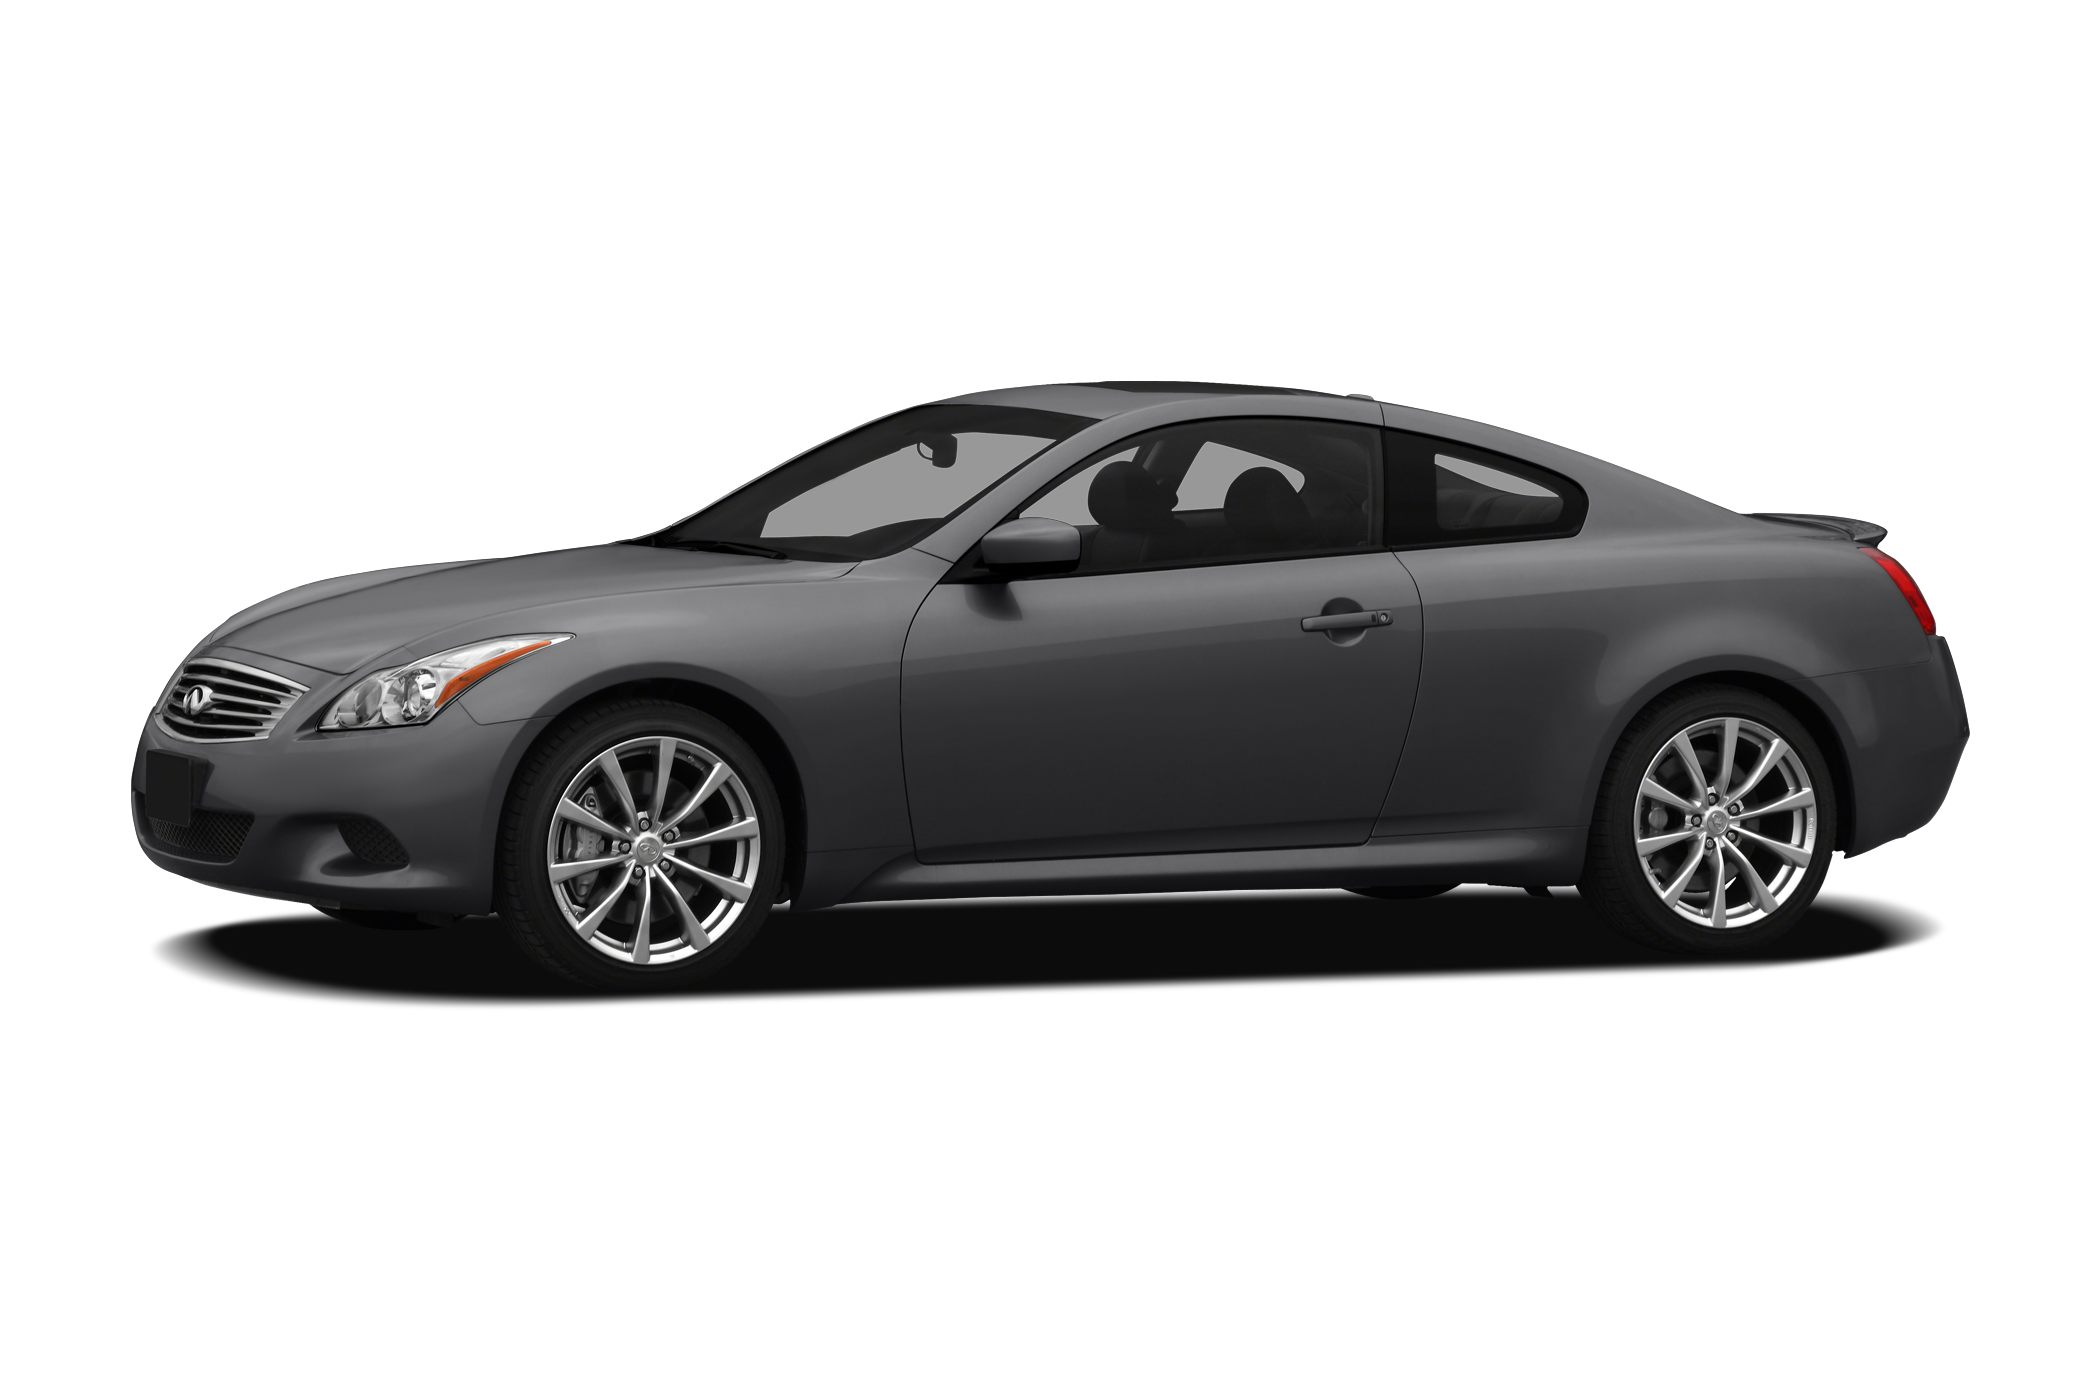 2010 Infiniti G37 X Sedan for sale in Baltimore for $18,000 with 75,117 miles